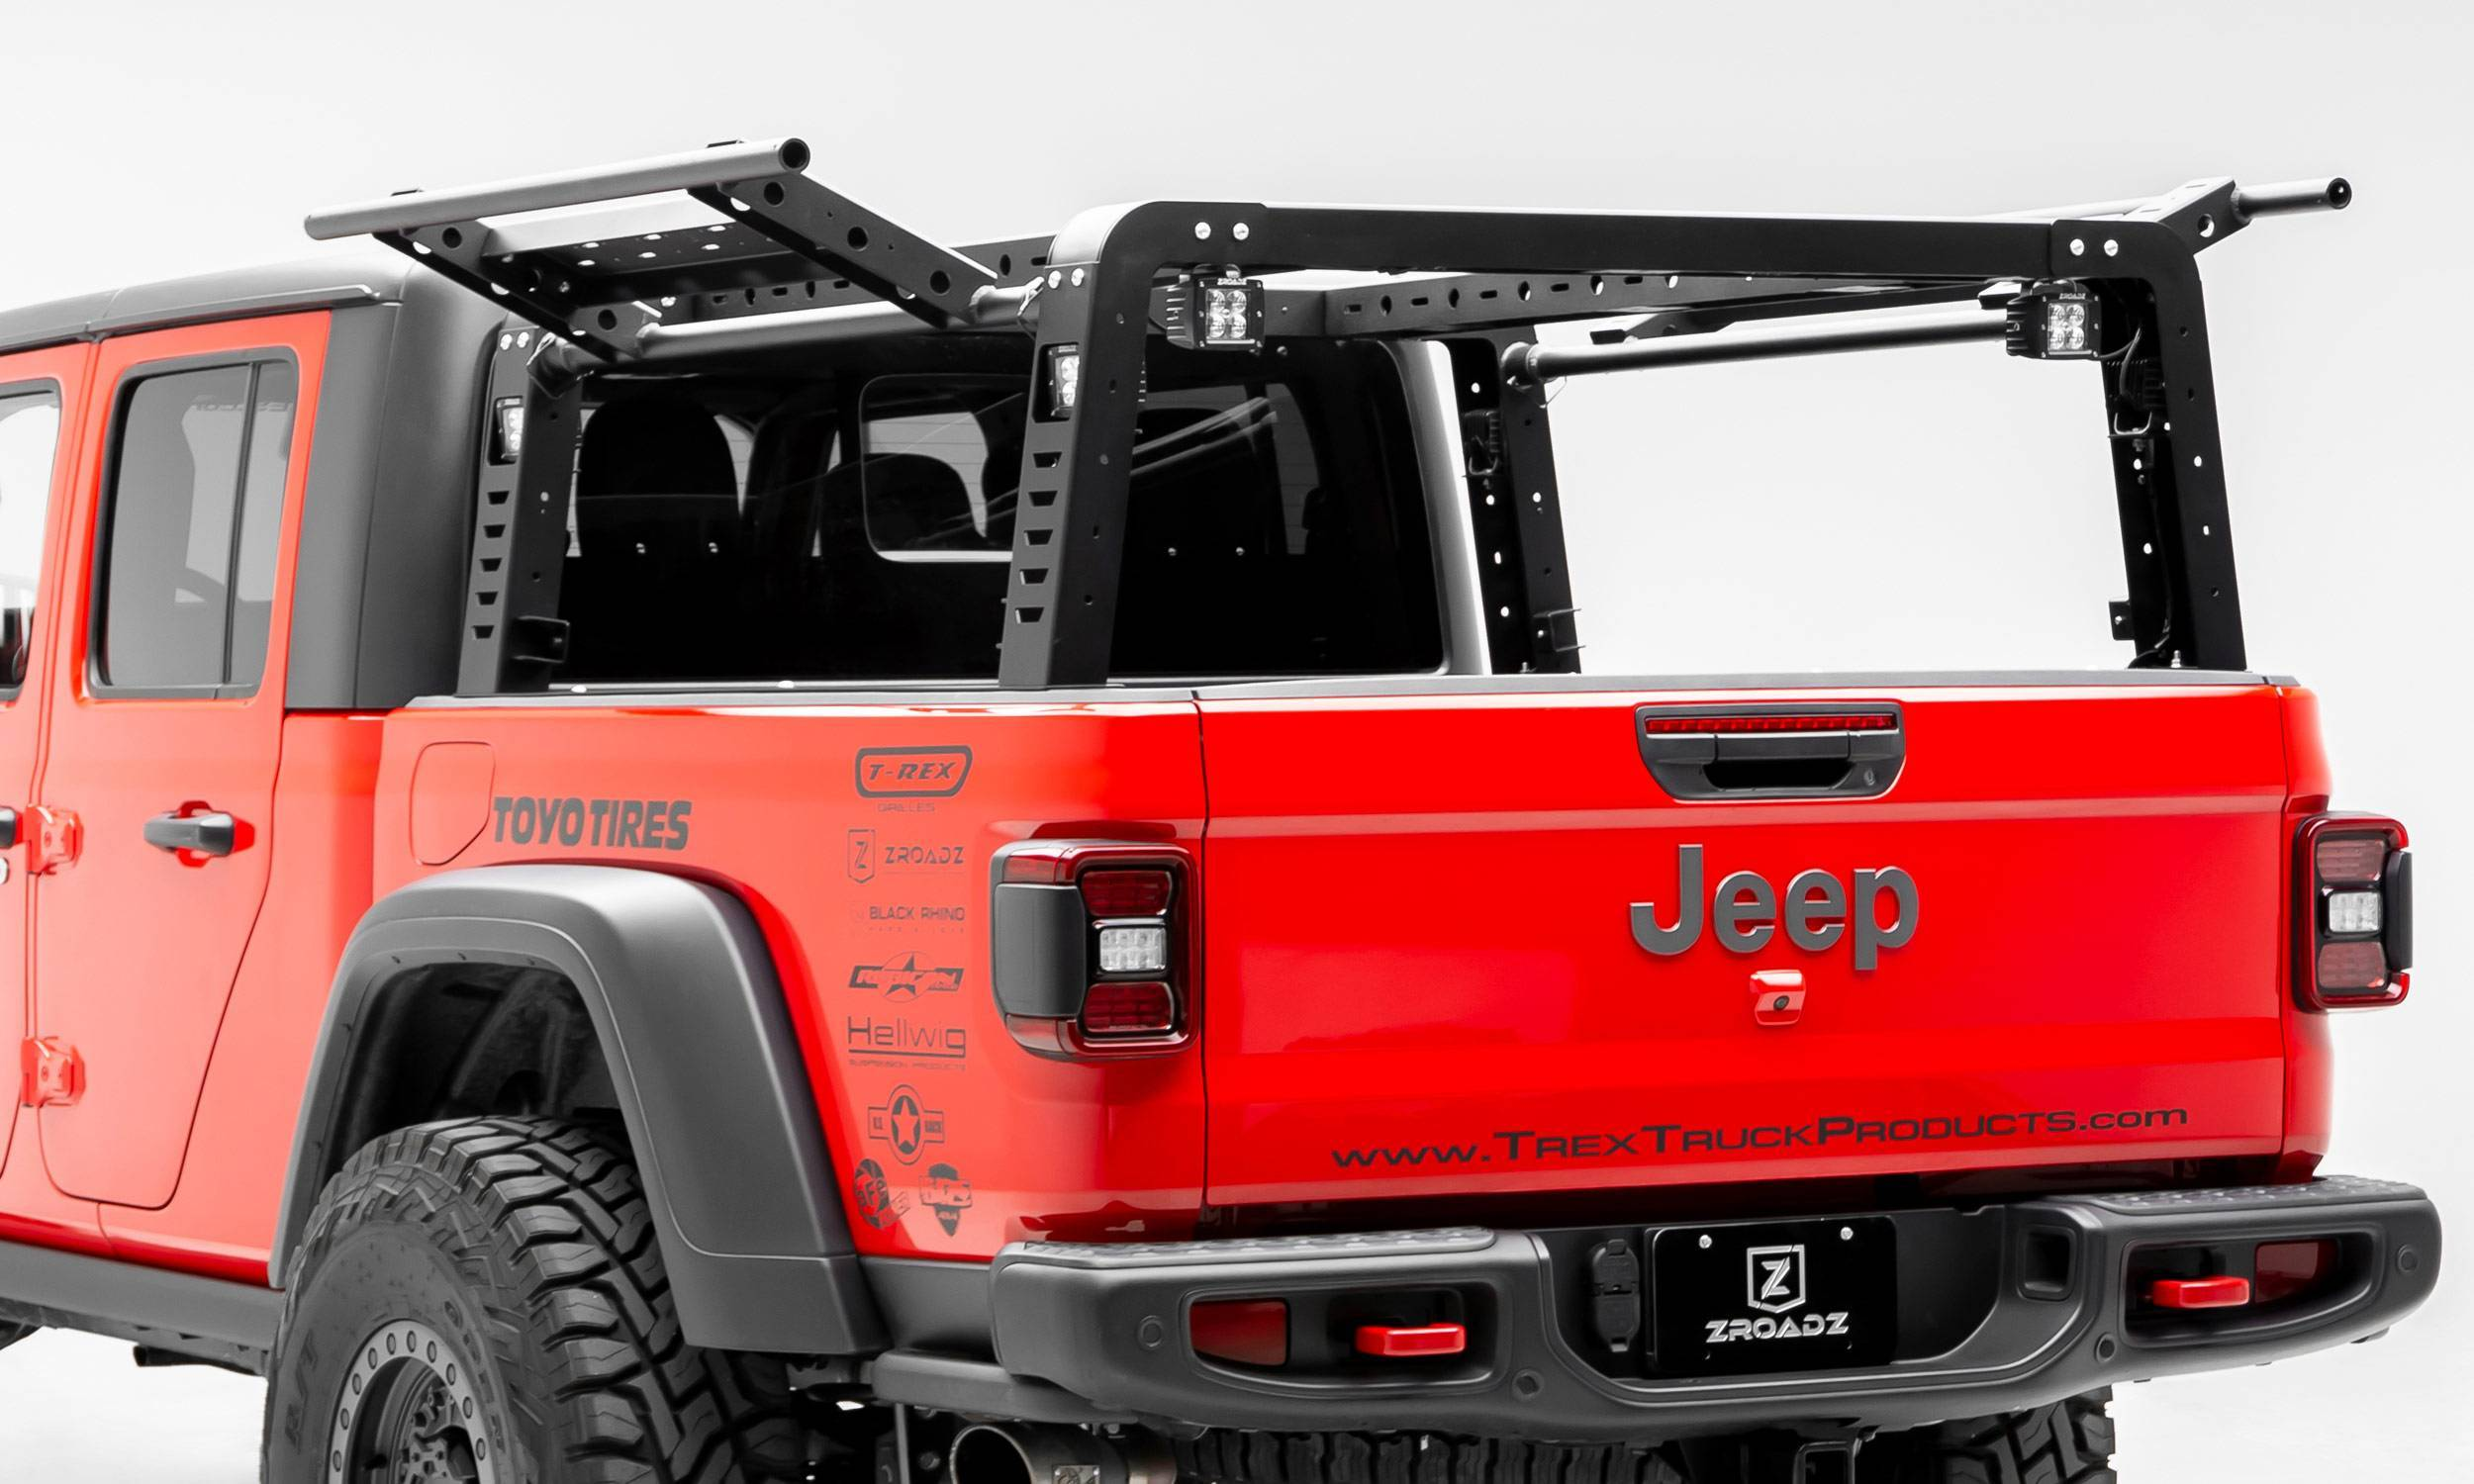 2019-2021 Jeep Gladiator Access Overland Rack With Two Lifting Side Gates, For use on Factory Trail Rail Cargo Systems - PN #Z834111